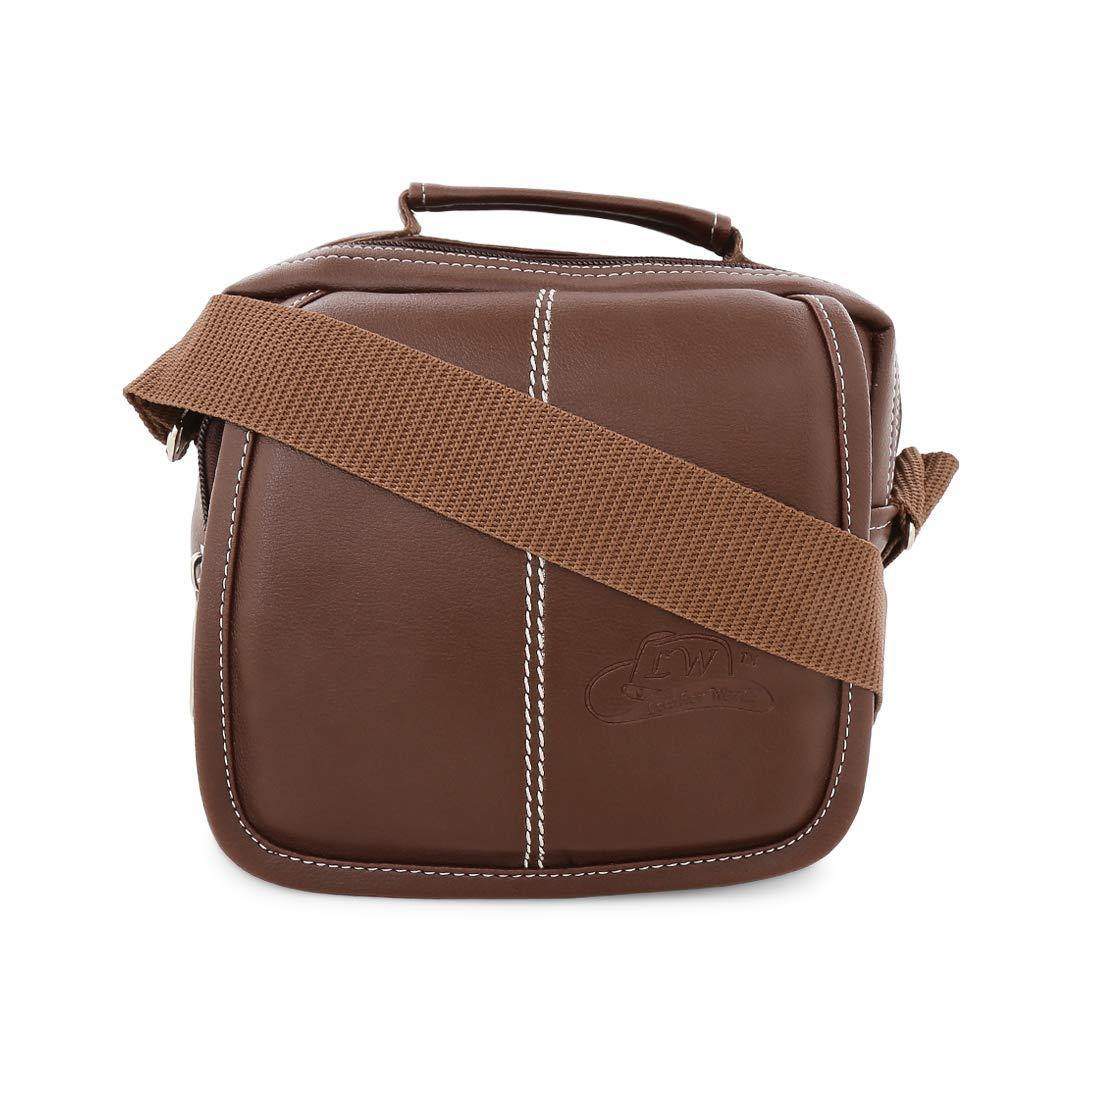 Leather World Unisex Travel Organizer Pouch